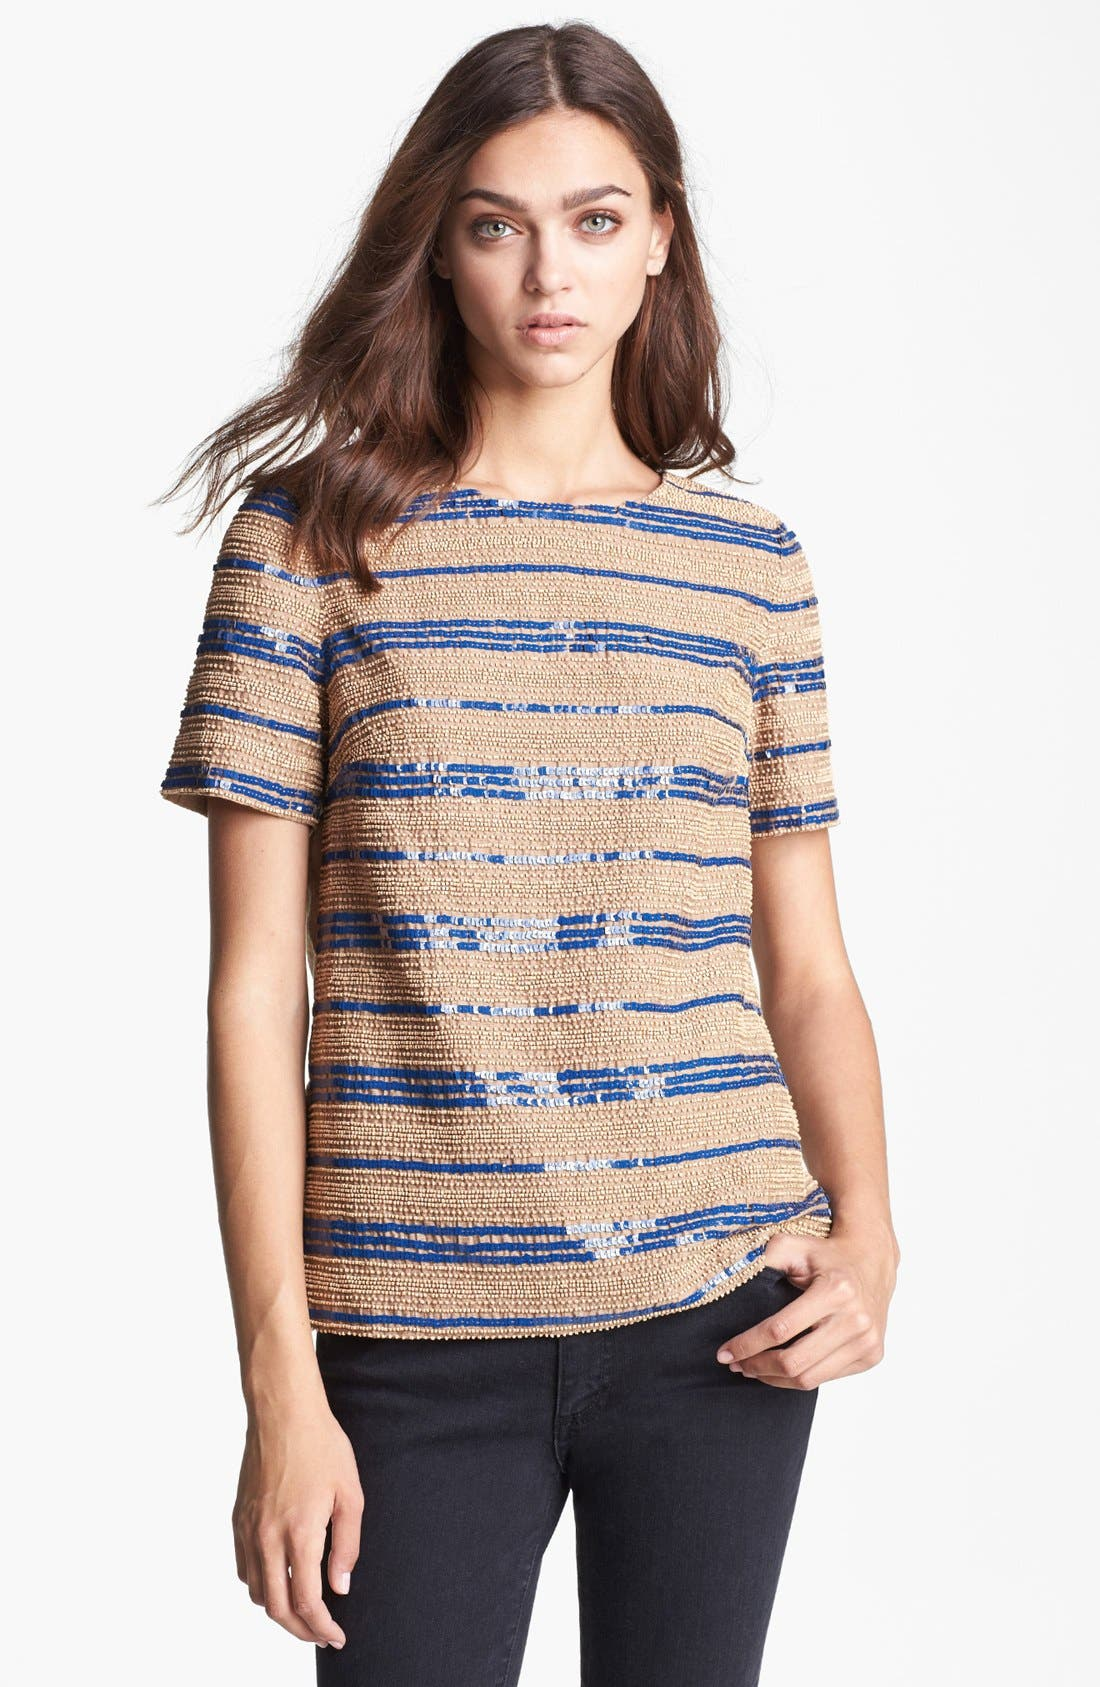 Alternate Image 1 Selected - Tory Burch 'Theresa' Embellished Top